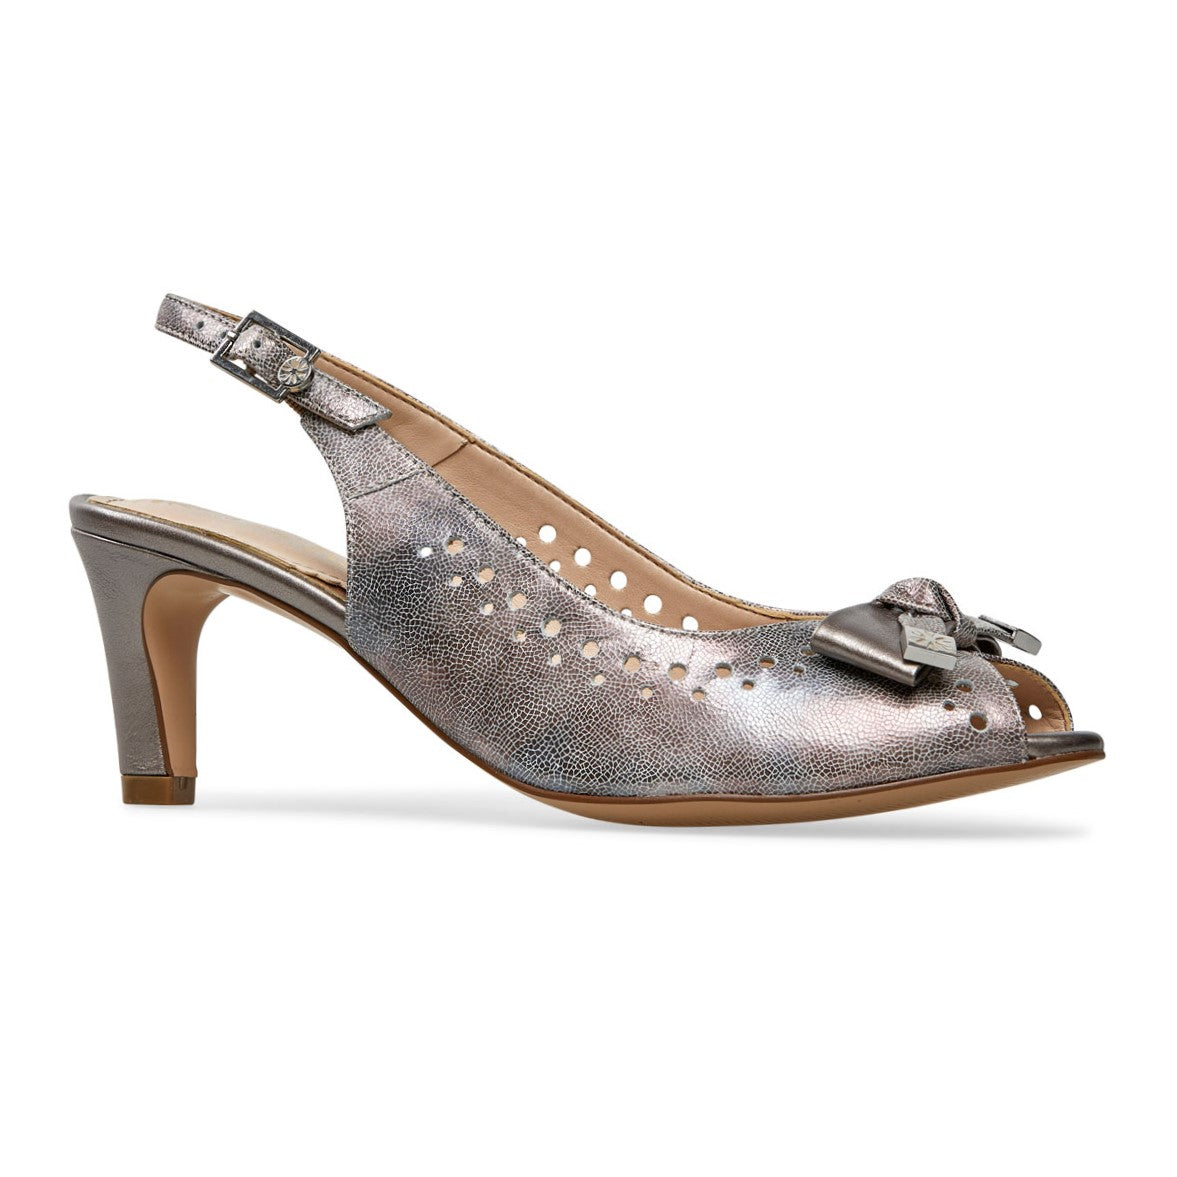 Hawkhurst High Heel Sling Back Peep Toe Shoe